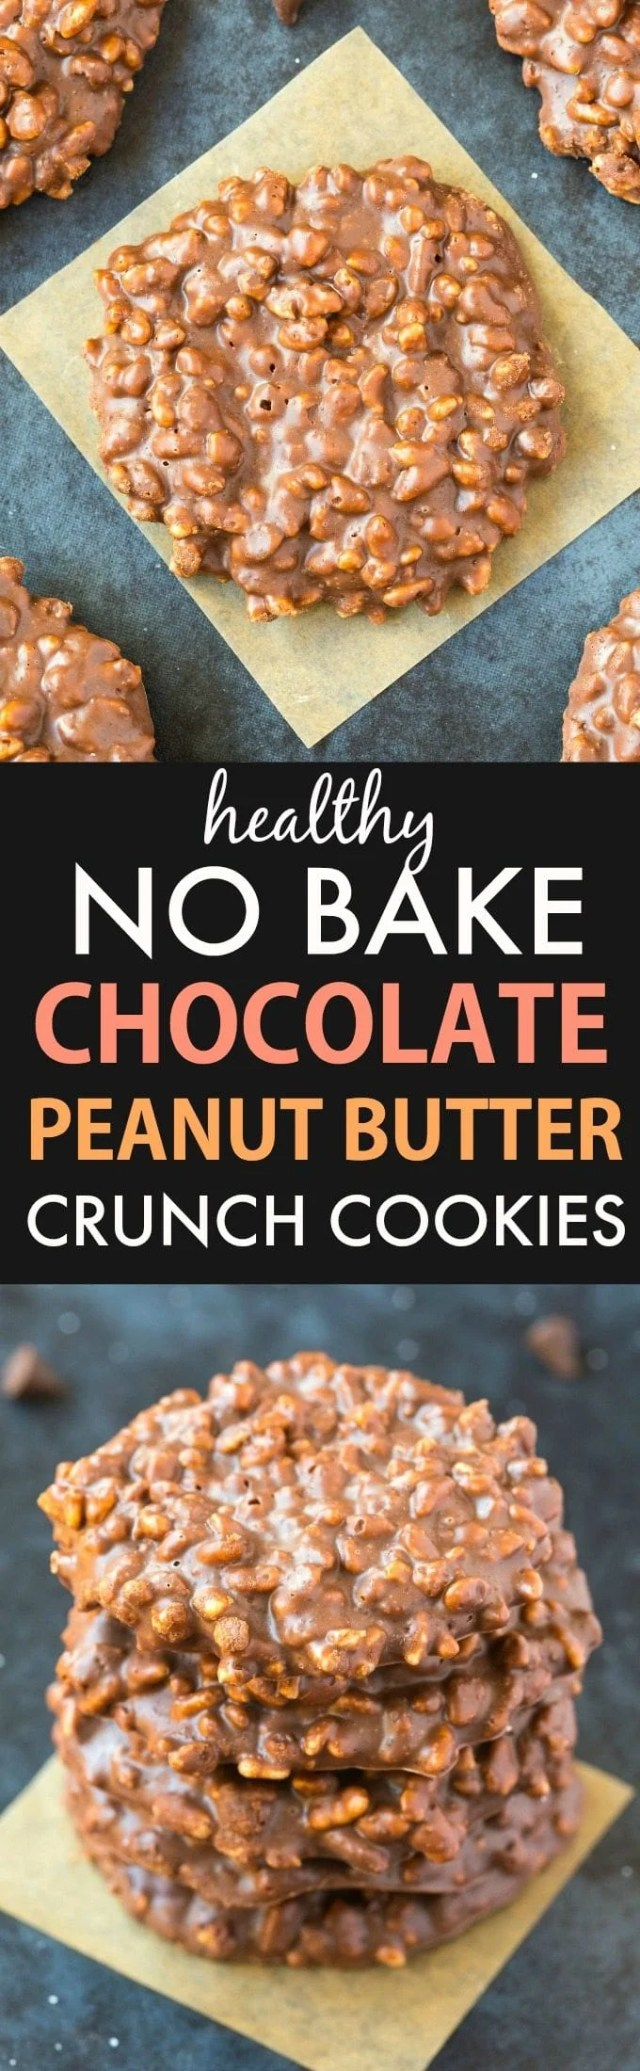 Healthy No Bake Chocolate Peanut Butter Crunch Cookies